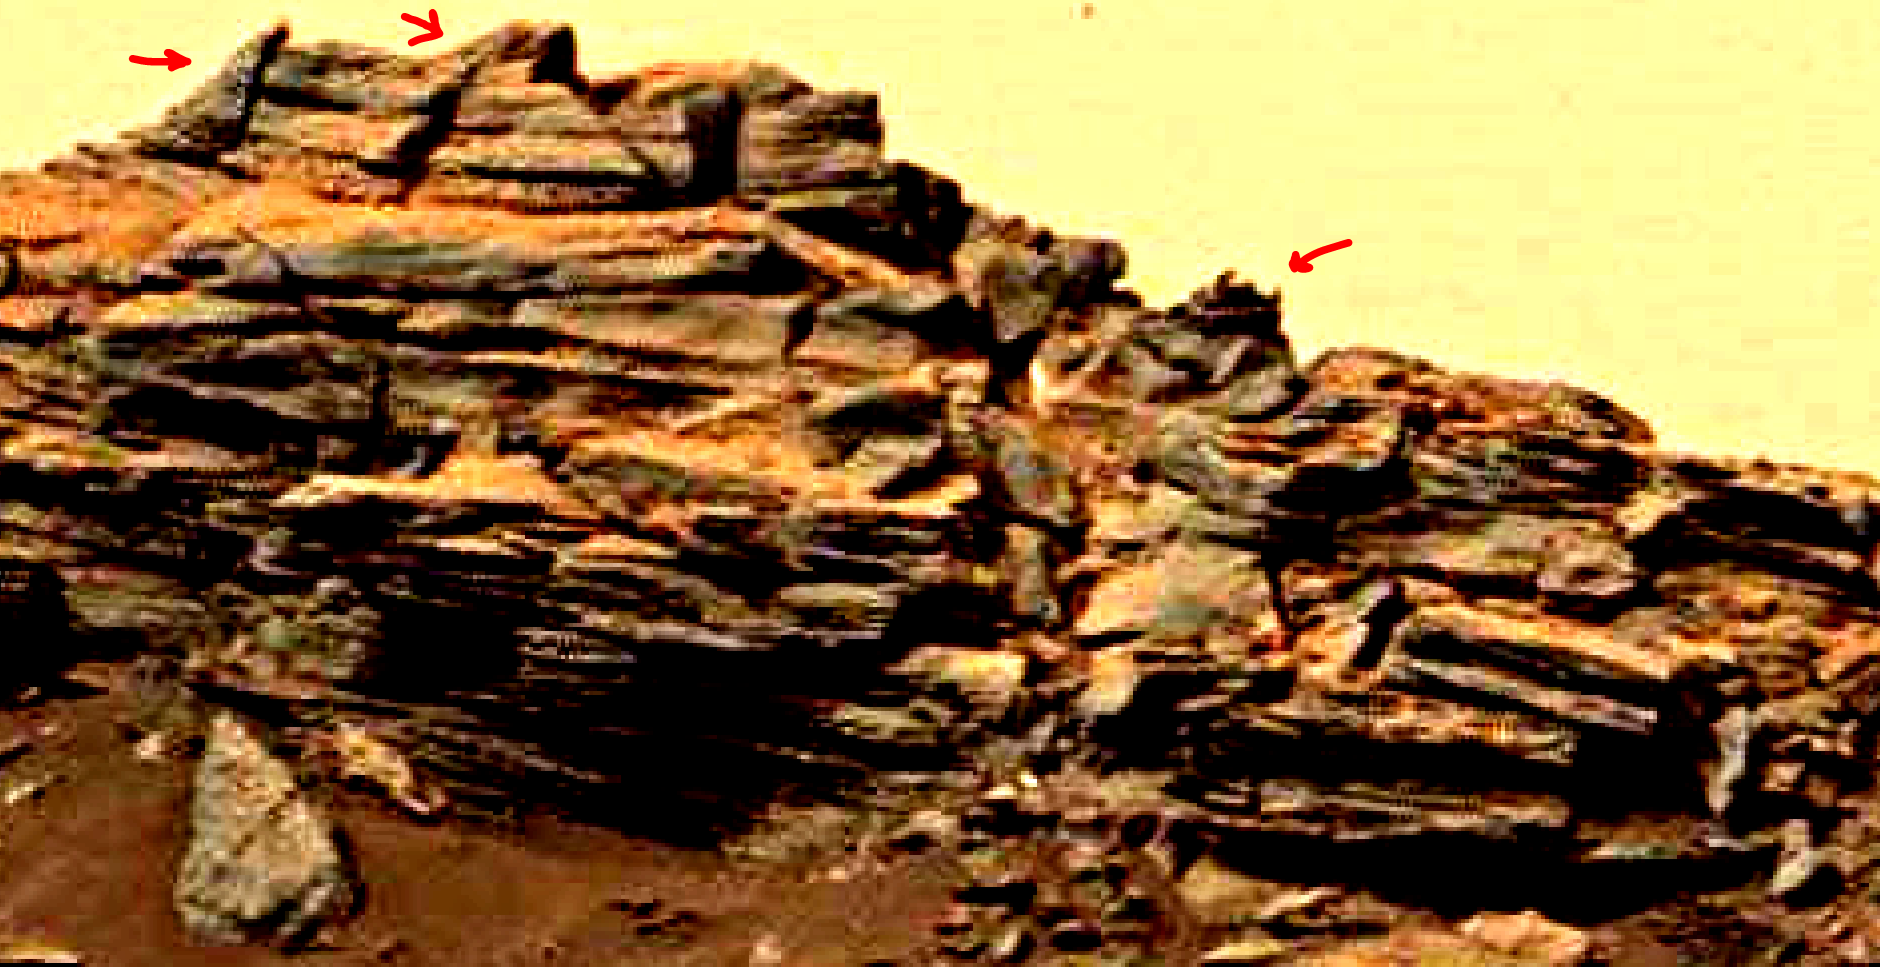 mars-sol-1463-anomaly-artifacts-21a-was-life-on-mars